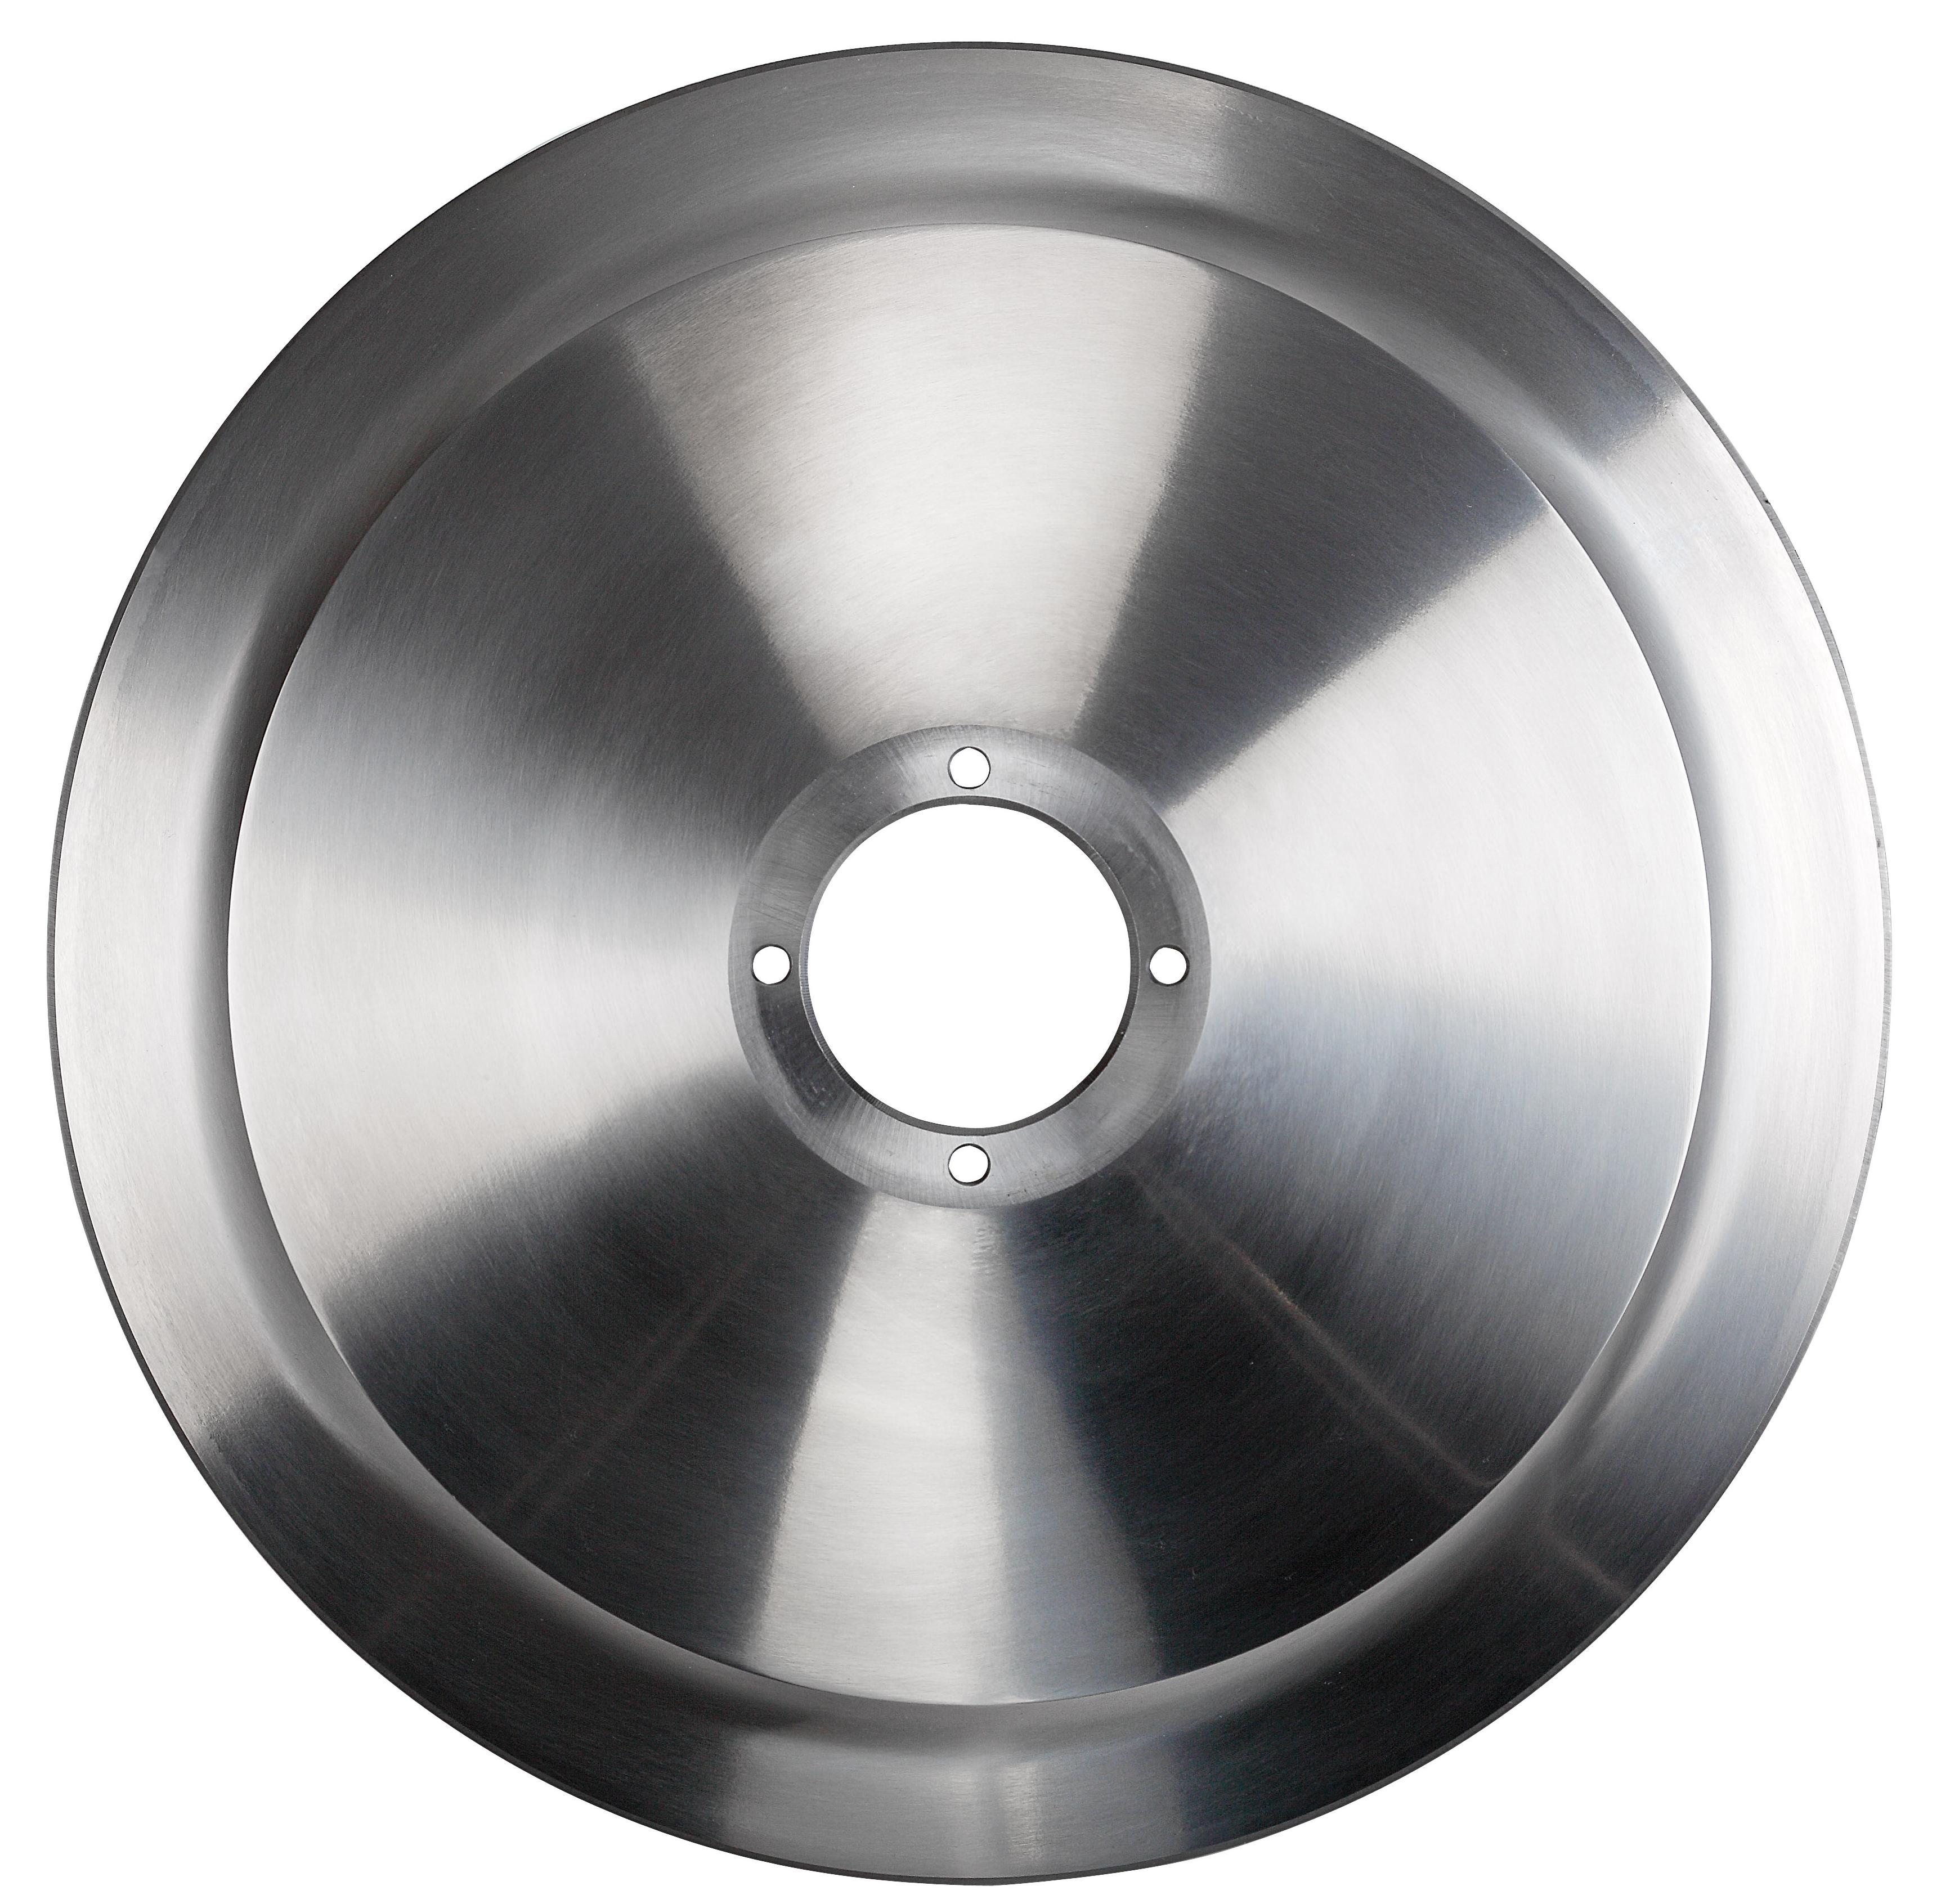 Domestic meat grinder blades and